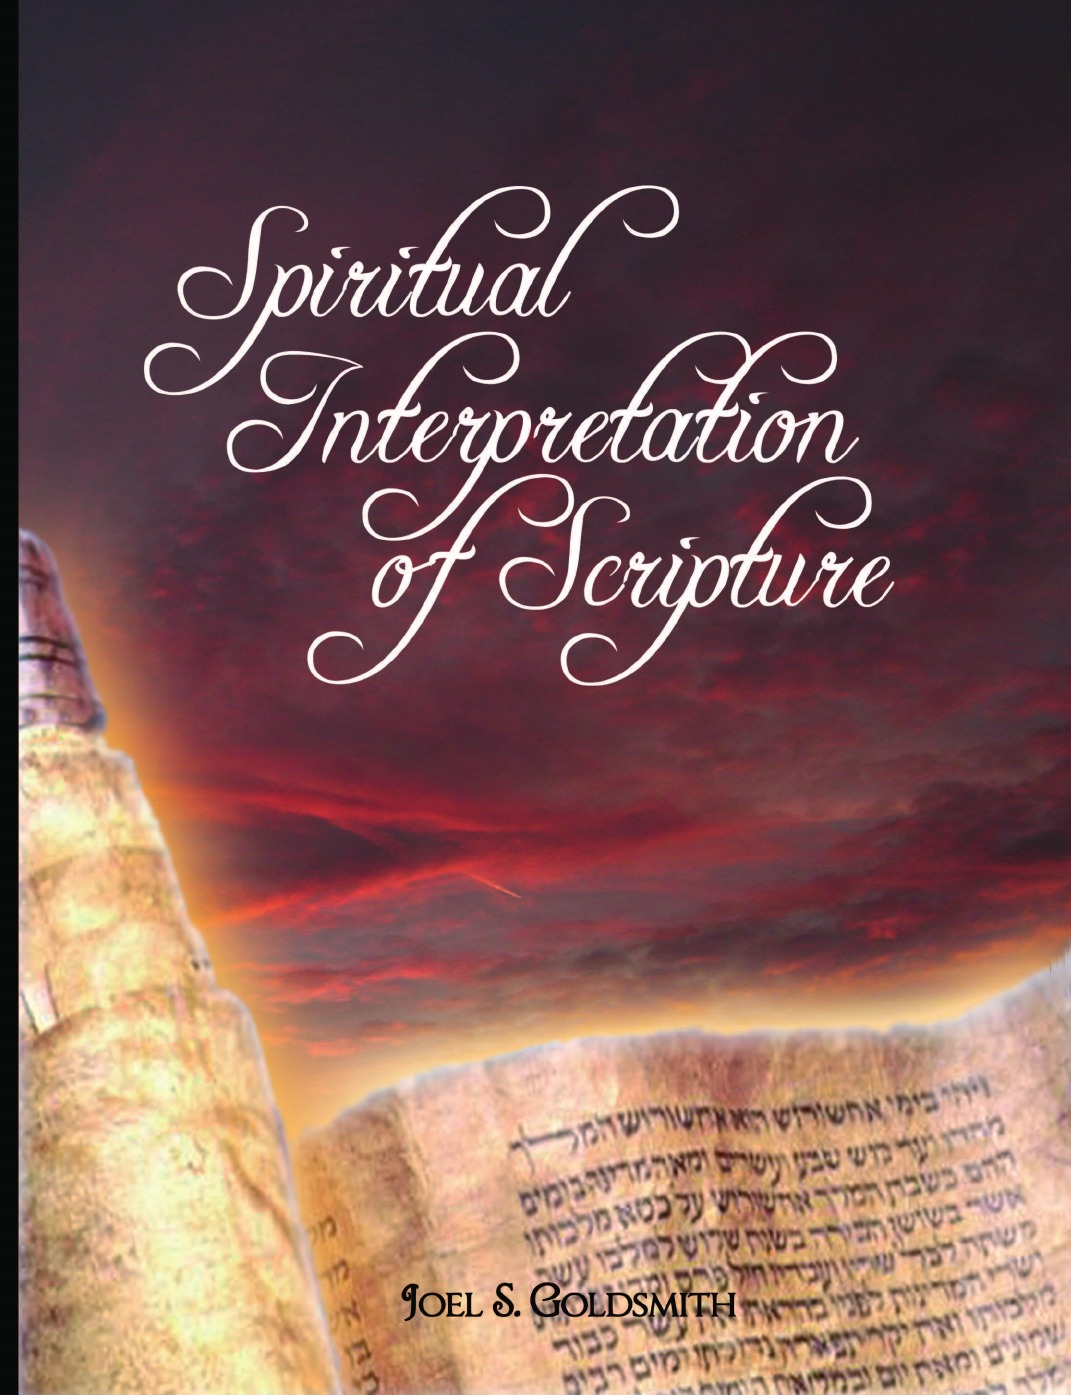 Joel S. Goldsmith, Goldsmith Joel Goldsmith, Joel Goldsmith Spiritual Interpretation of Scripture недорго, оригинальная цена